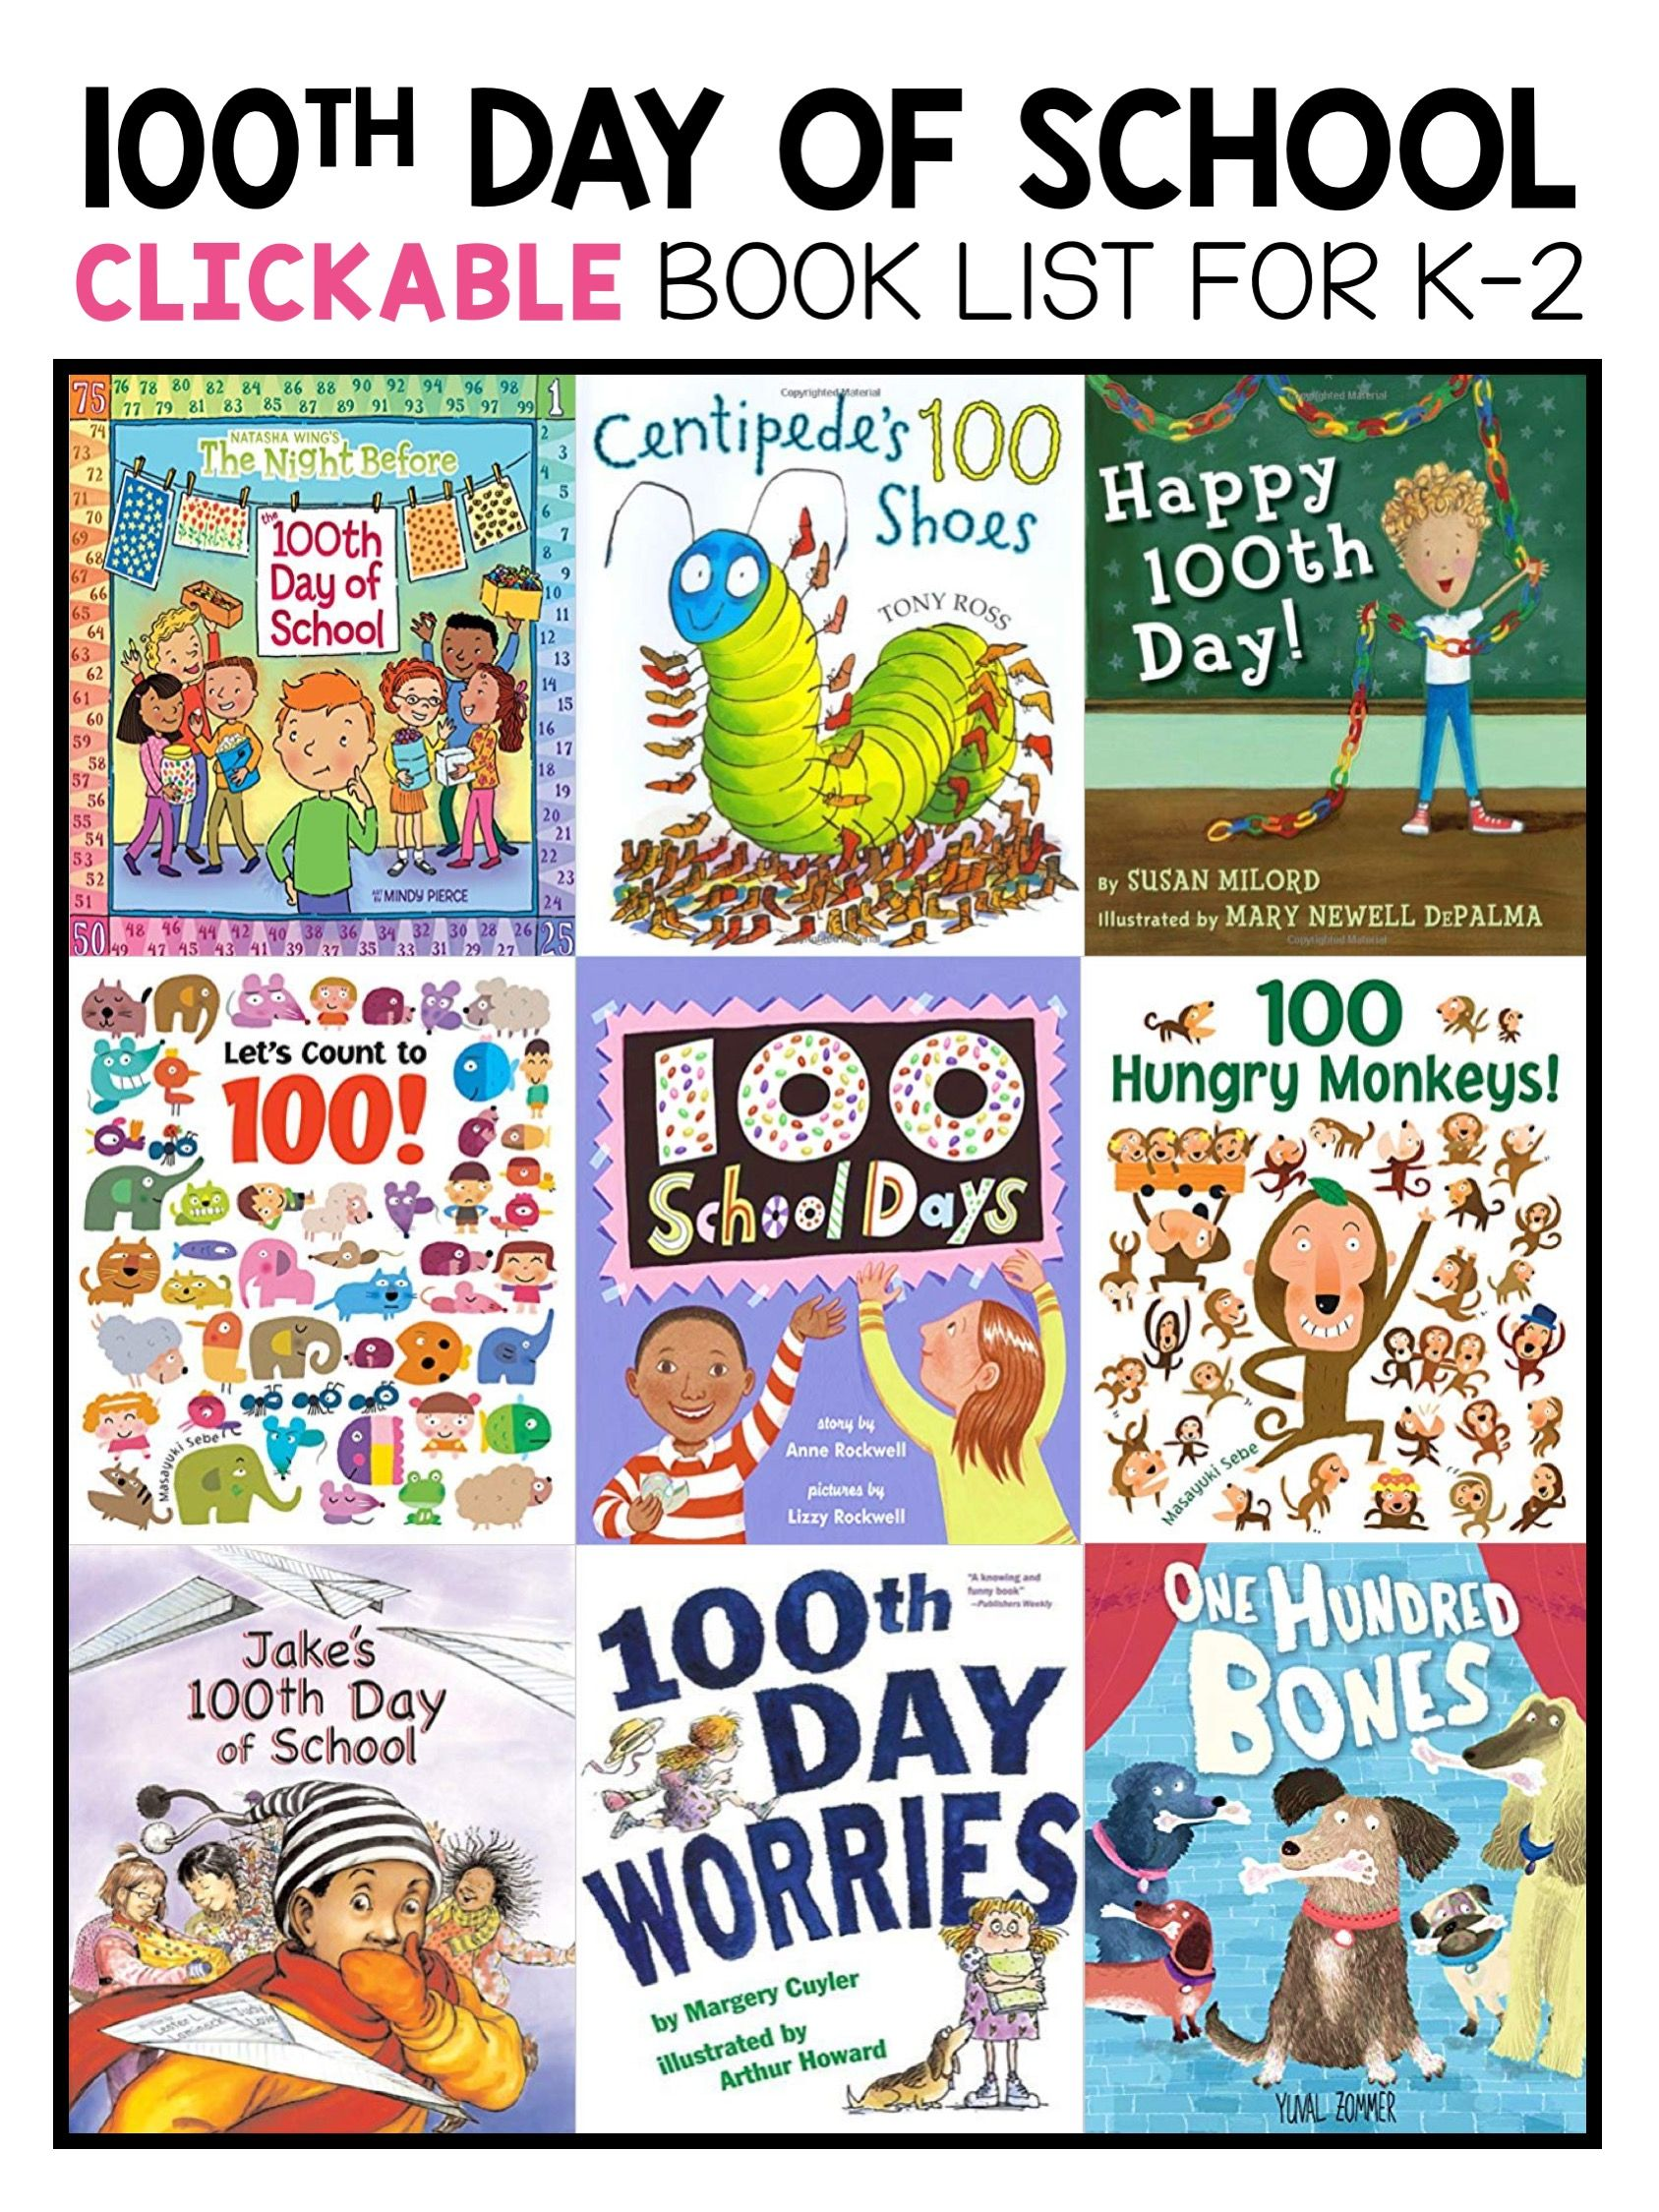 Best 100th day of school picture books for kindergarten